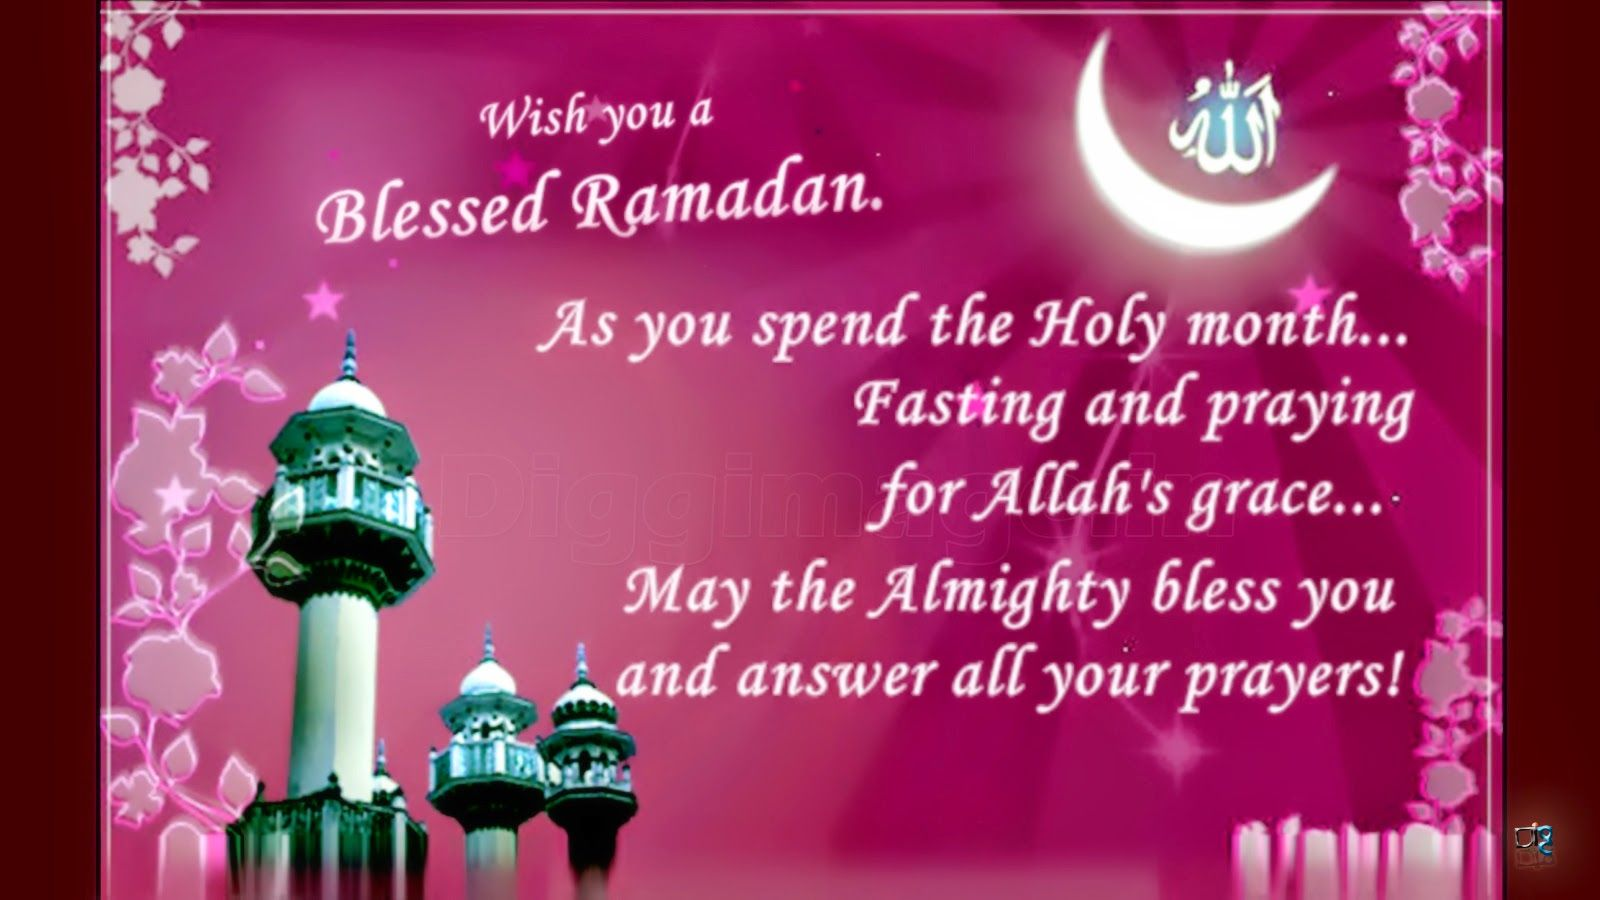 Ramzan wallpaper with dates hd wallpapers pinterest ramzan ramzan wallpaper with dates hd wallpapers pinterest ramzan wallpaper and islam kristyandbryce Gallery